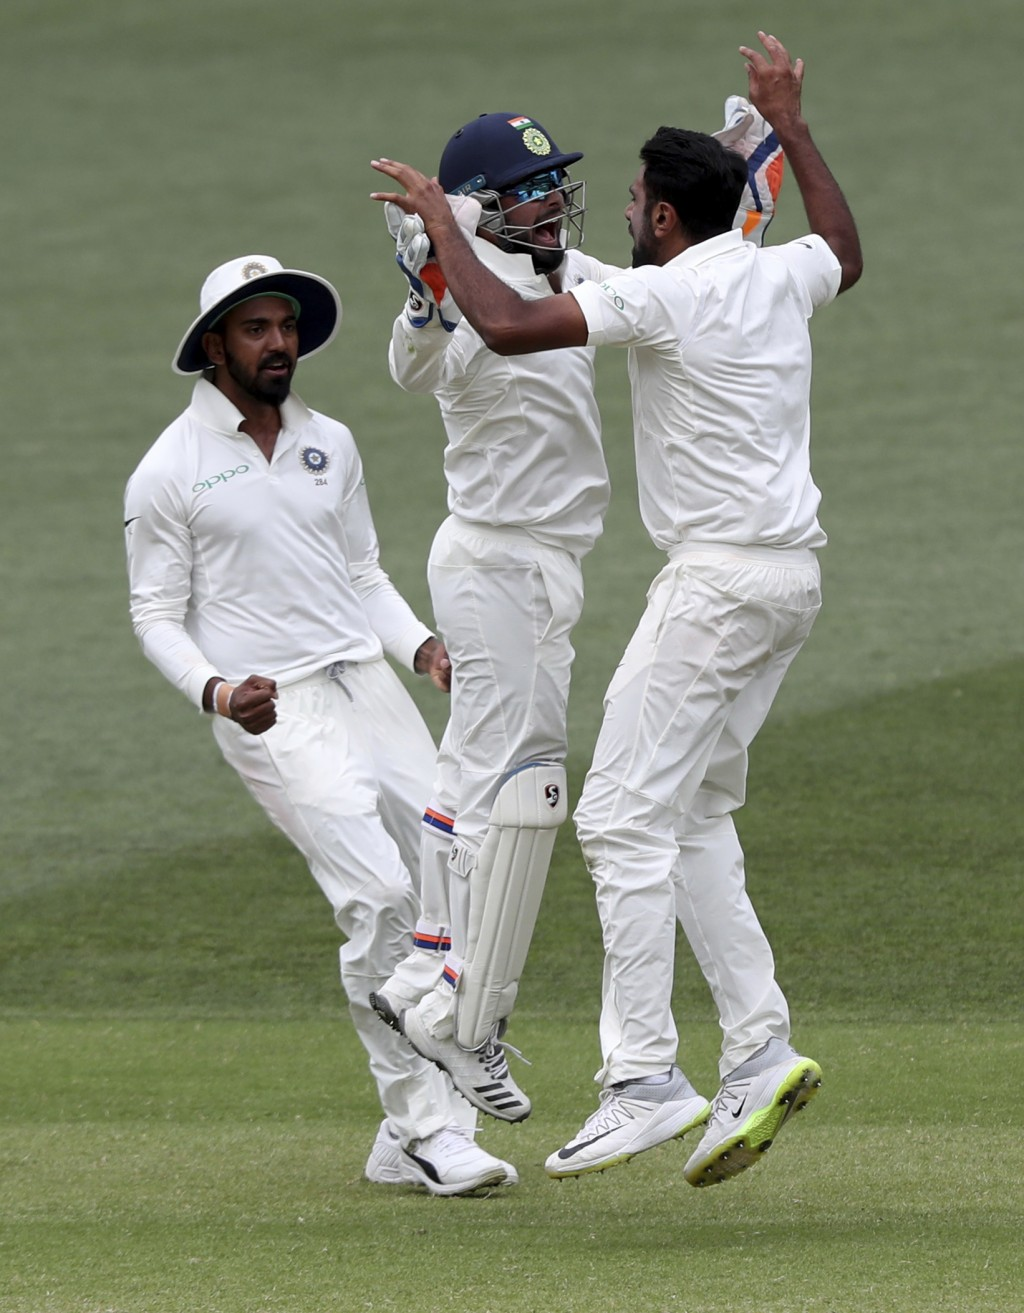 India's Ravi Ashwin, right, celebrates with teammate Rishabh Pant after taking the wicket of Australia's Josh Hazlewood to win the first cricket test ...